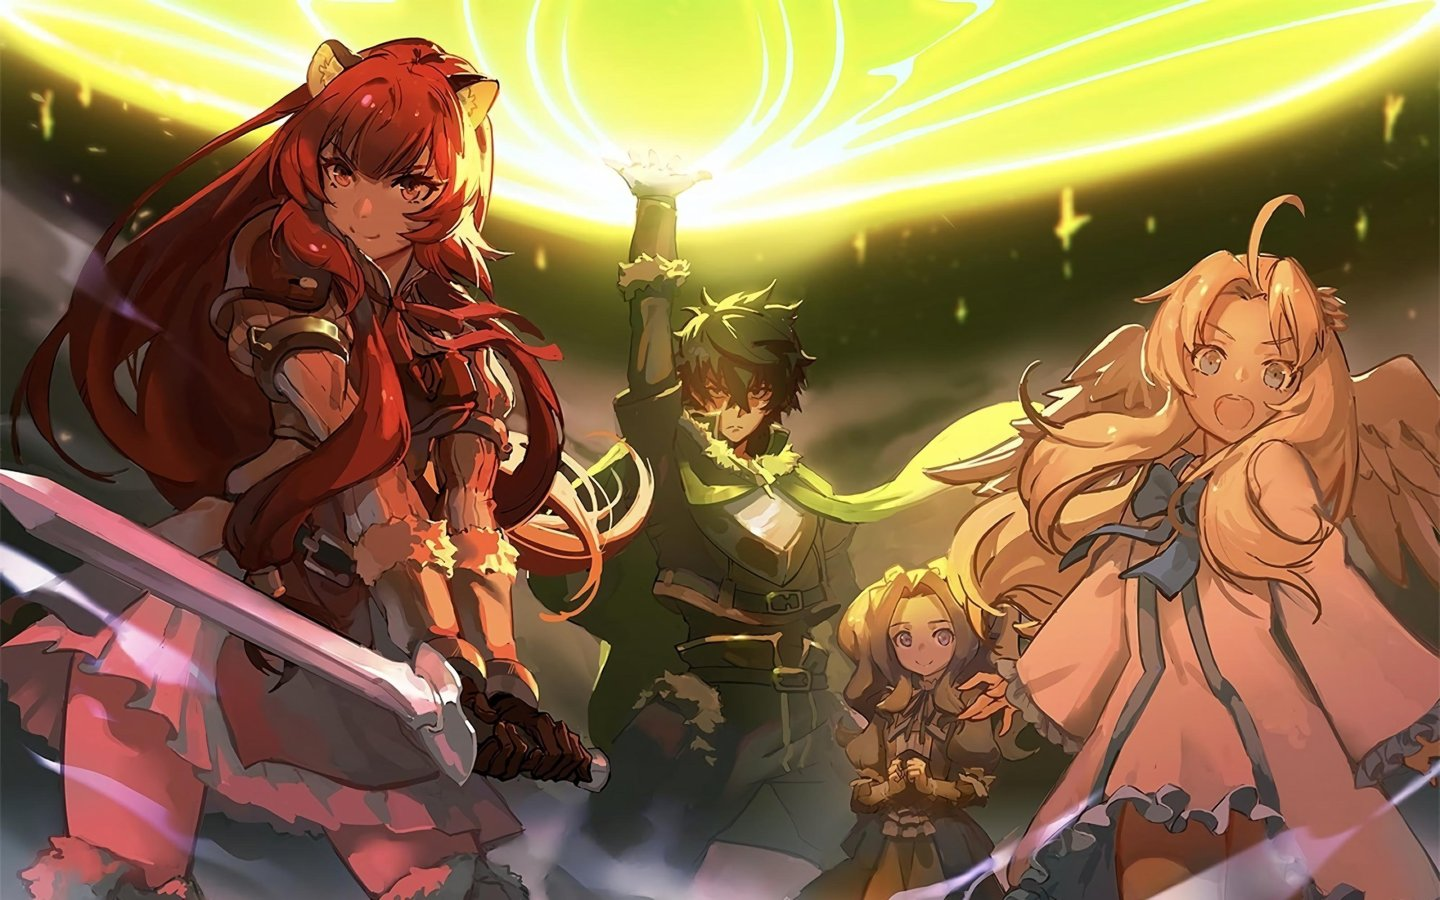 Anime Like Cautious Hero The Hero Is Overpowered But Is Overly Cautious Graymand